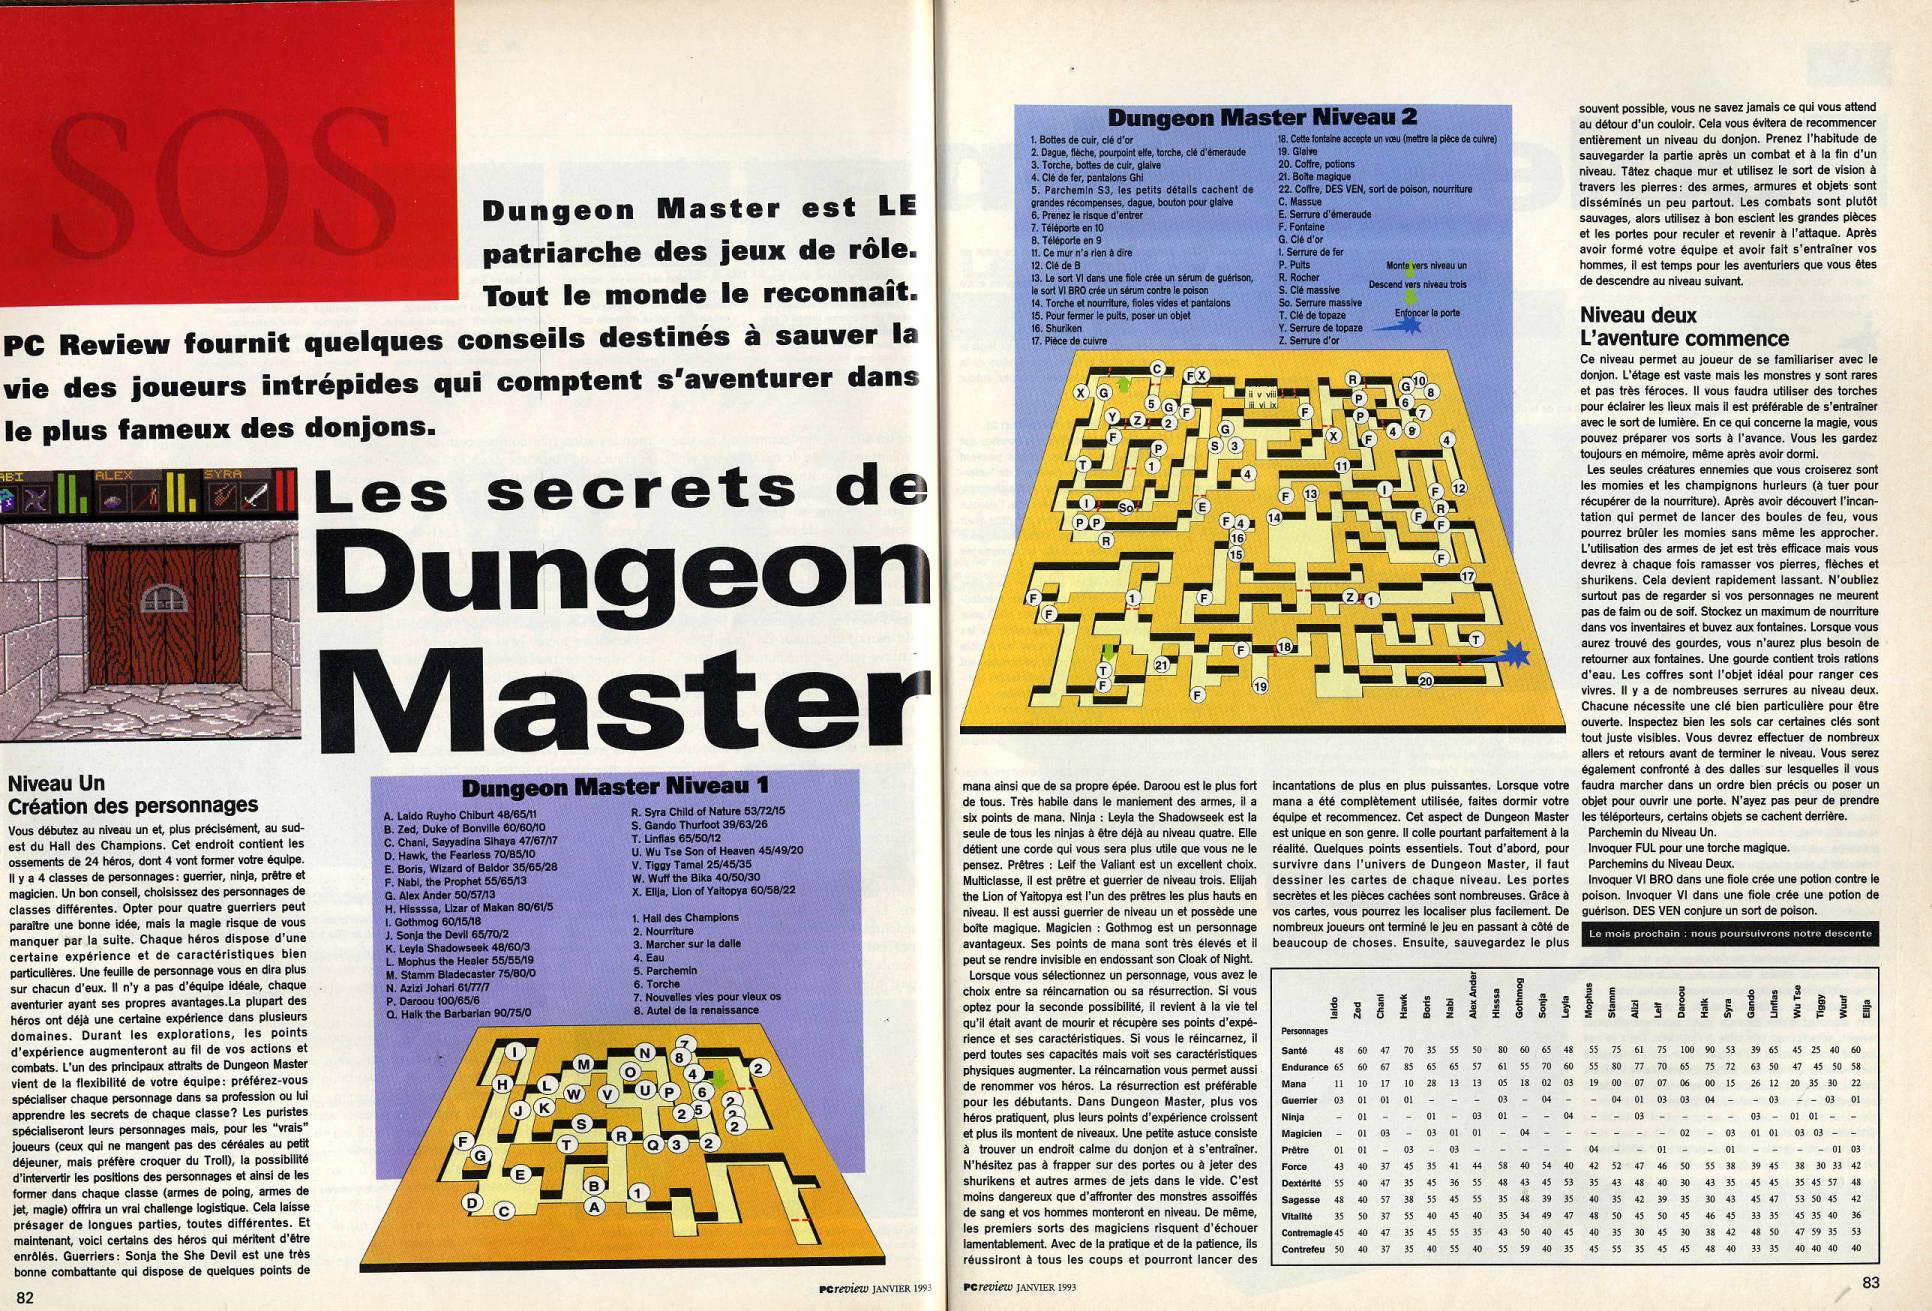 Dungeon Master Guide published in French magazine 'PC Review', Issue #4, January 1993, Pages 82-83